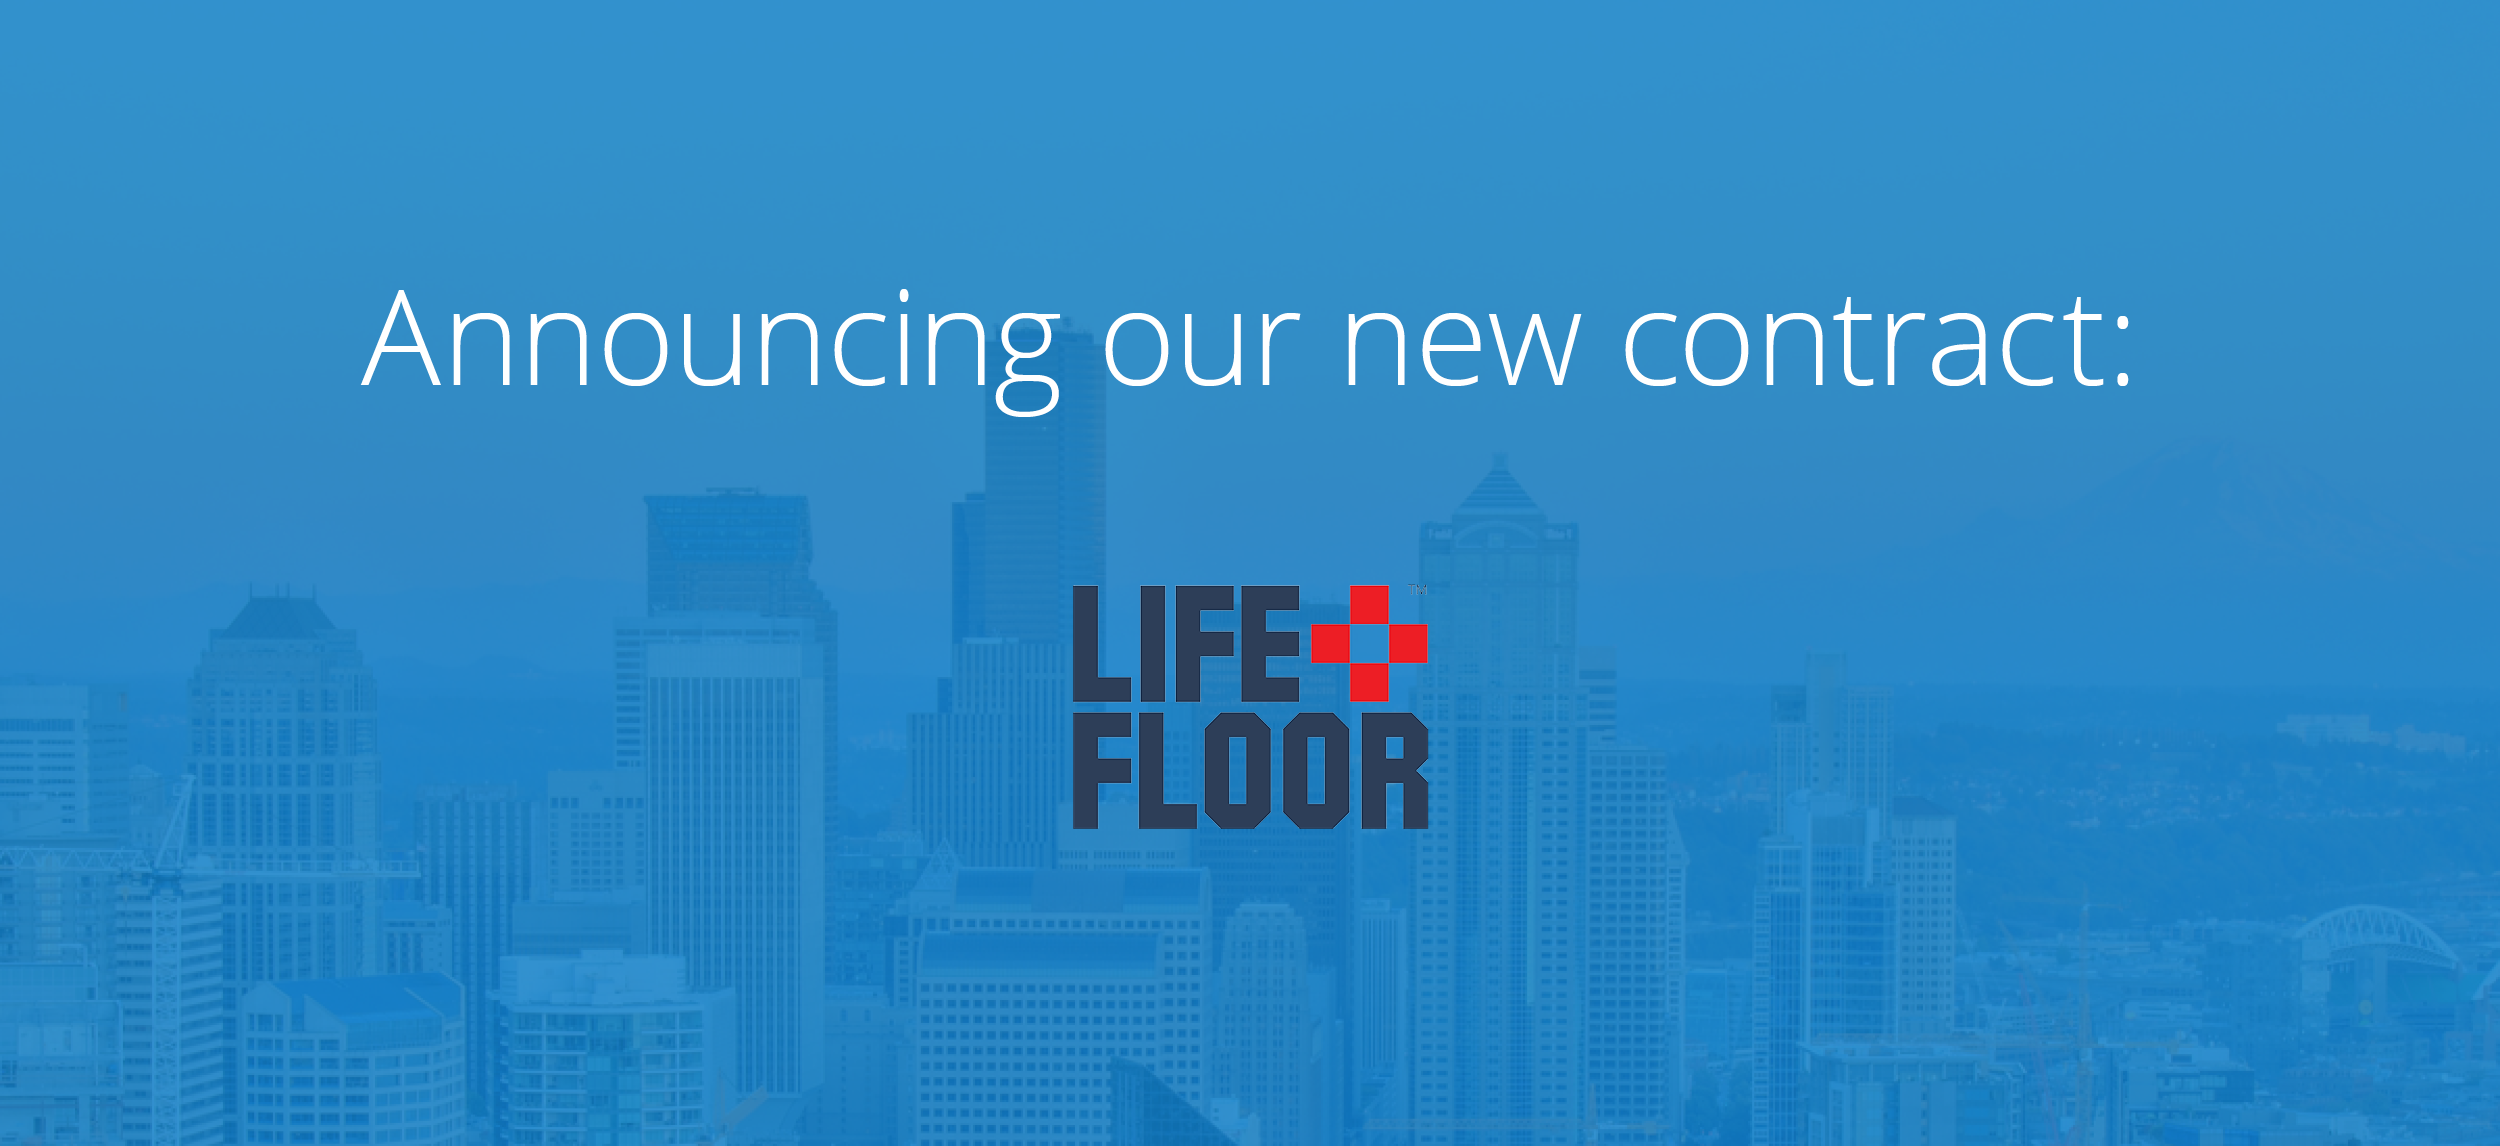 Life Force: Our Newest Contract